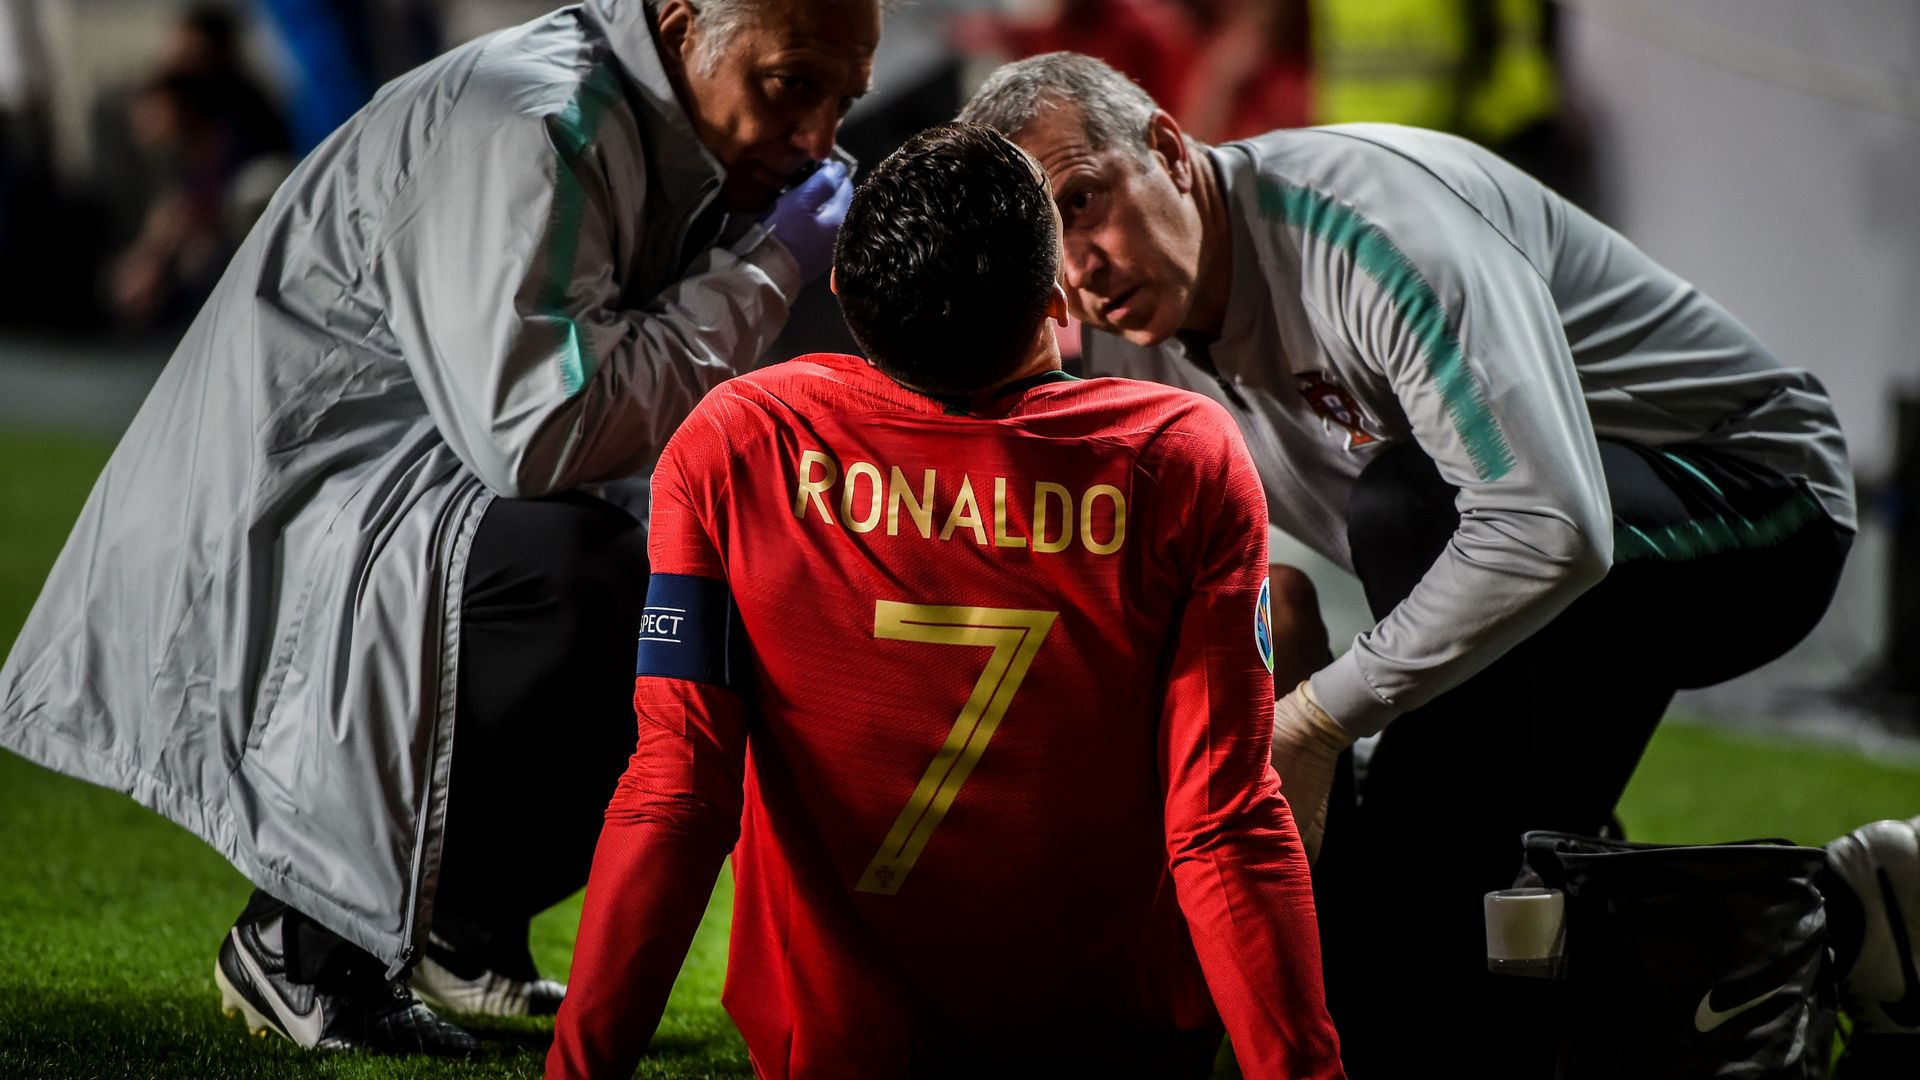 Ronaldo leaves Euro qualifier with apparent injury